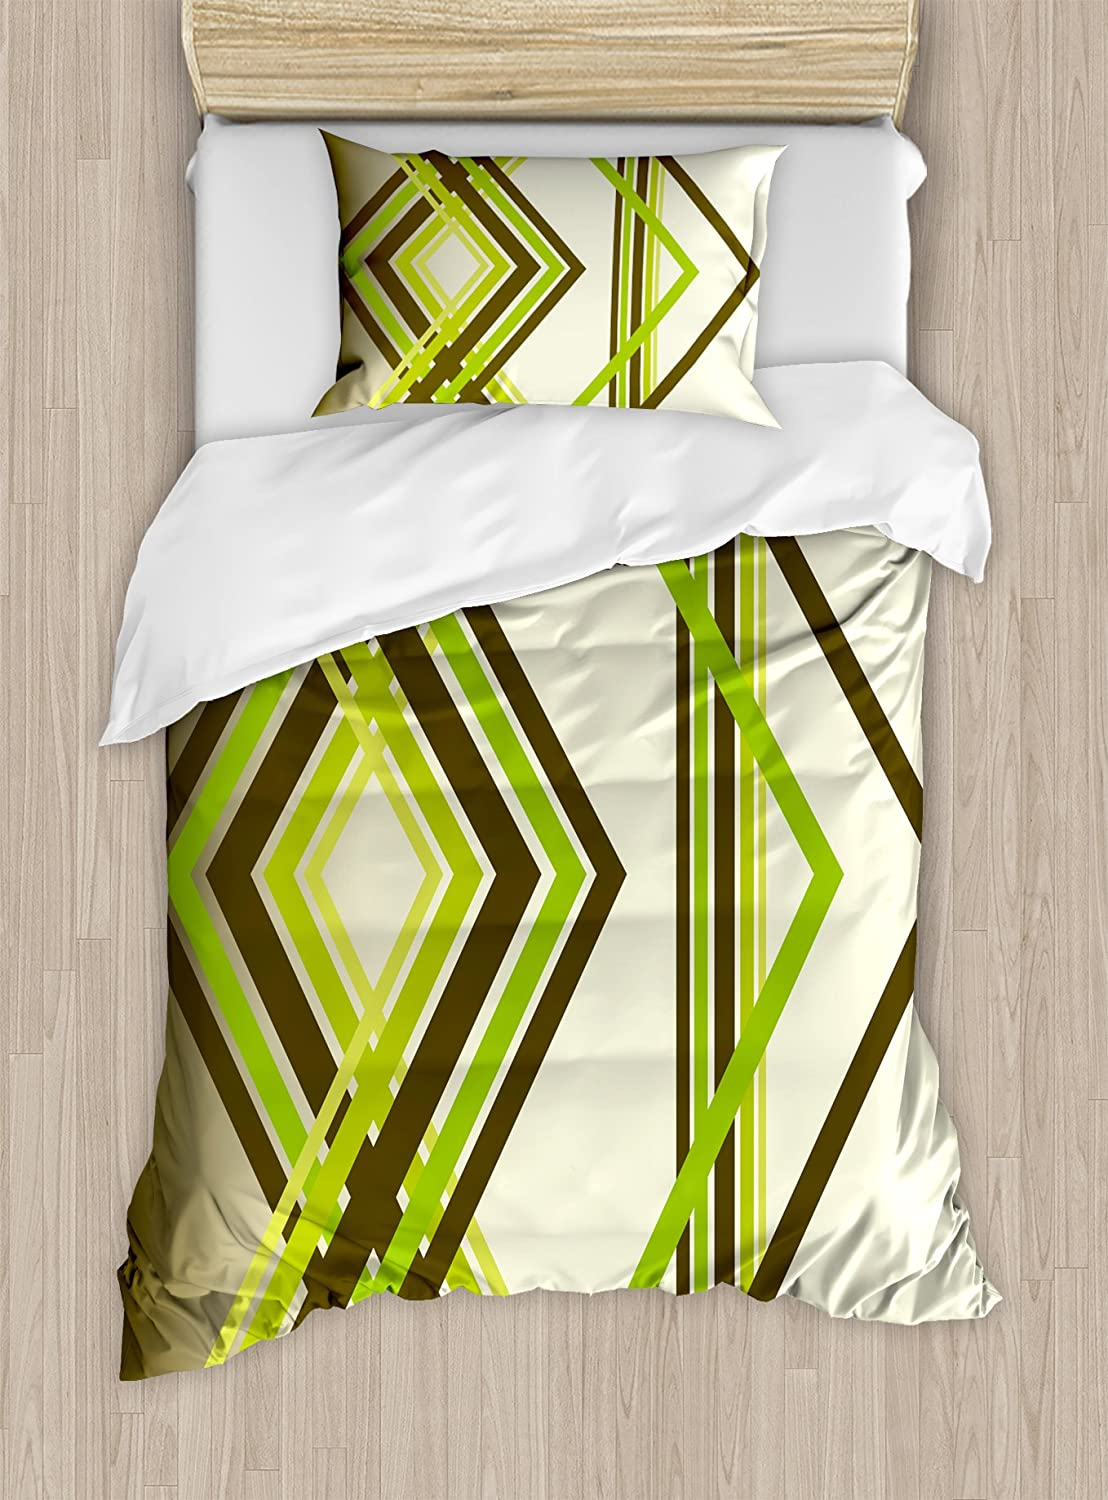 Ambesonne Abstract Duvet Cover Set, Geometric Diamond Shape Bands in Various Shades Illustration, Decorative 2 Piece Bedding Set with 1 Pillow Sham, Twin Size, Army Green